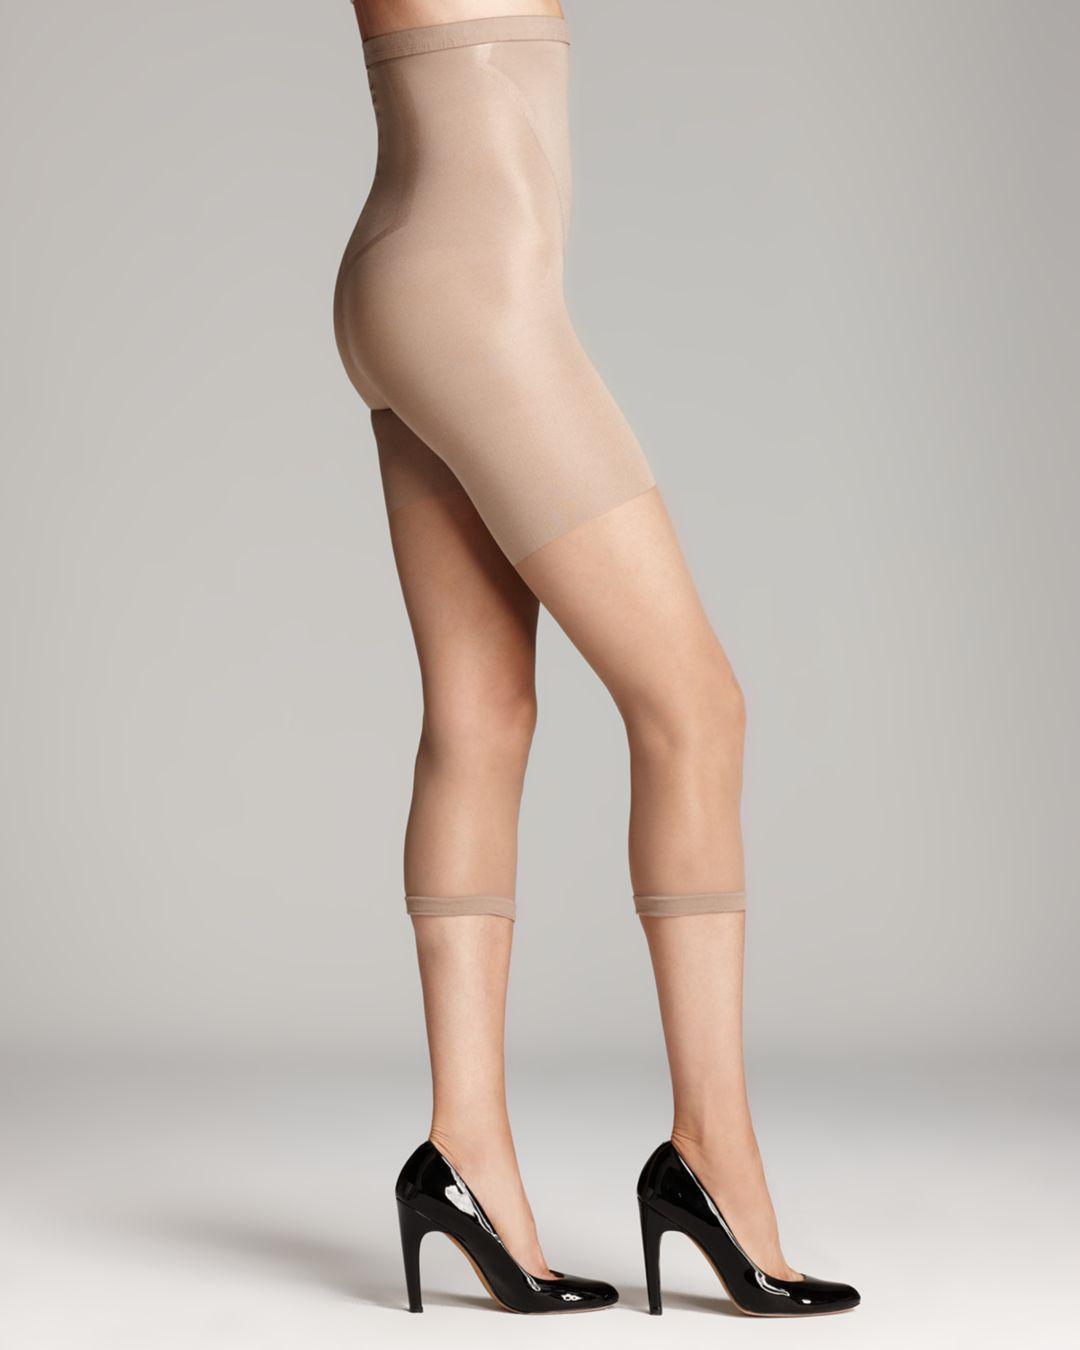 866149581a6fc Spanx. Women s Natural In-power Line Super Footless Shaper Capri Tights